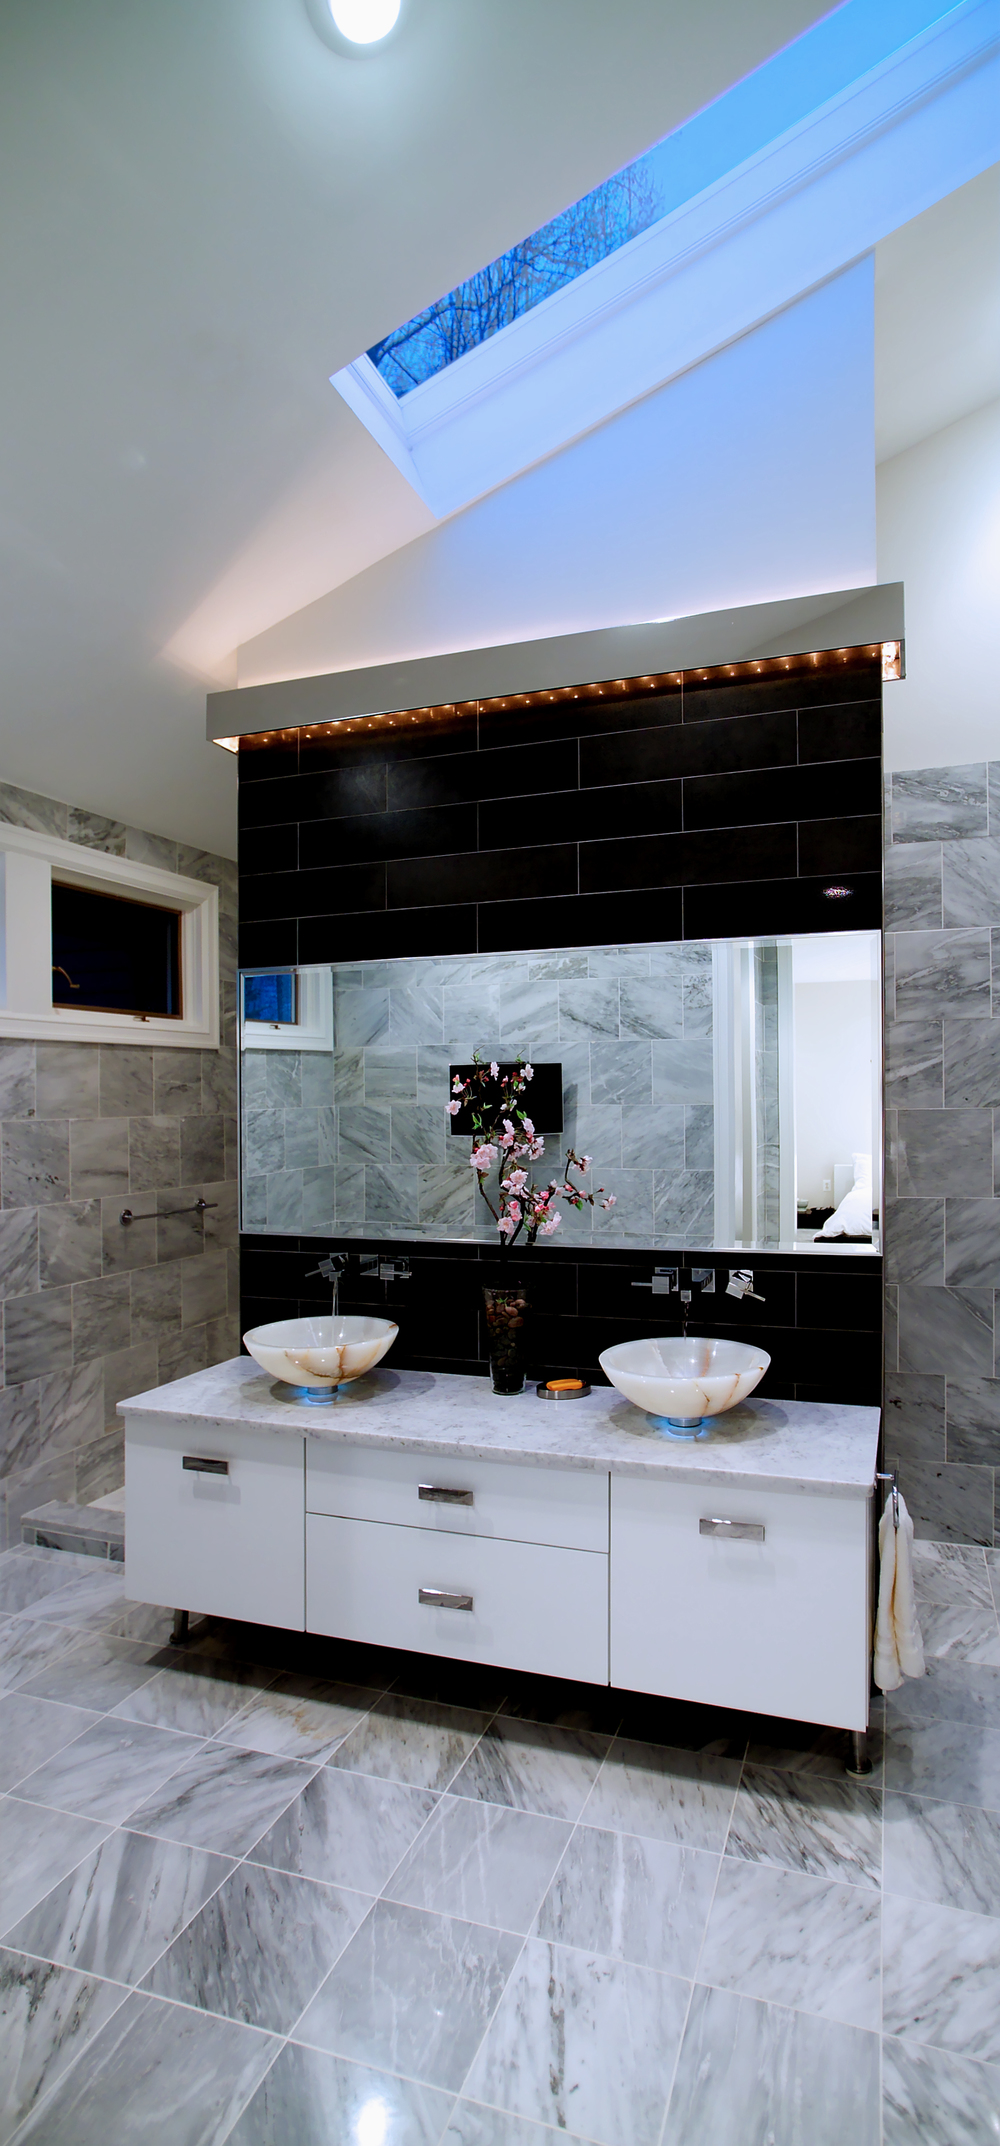 Master Bath 3 - View of Vanity.jpg